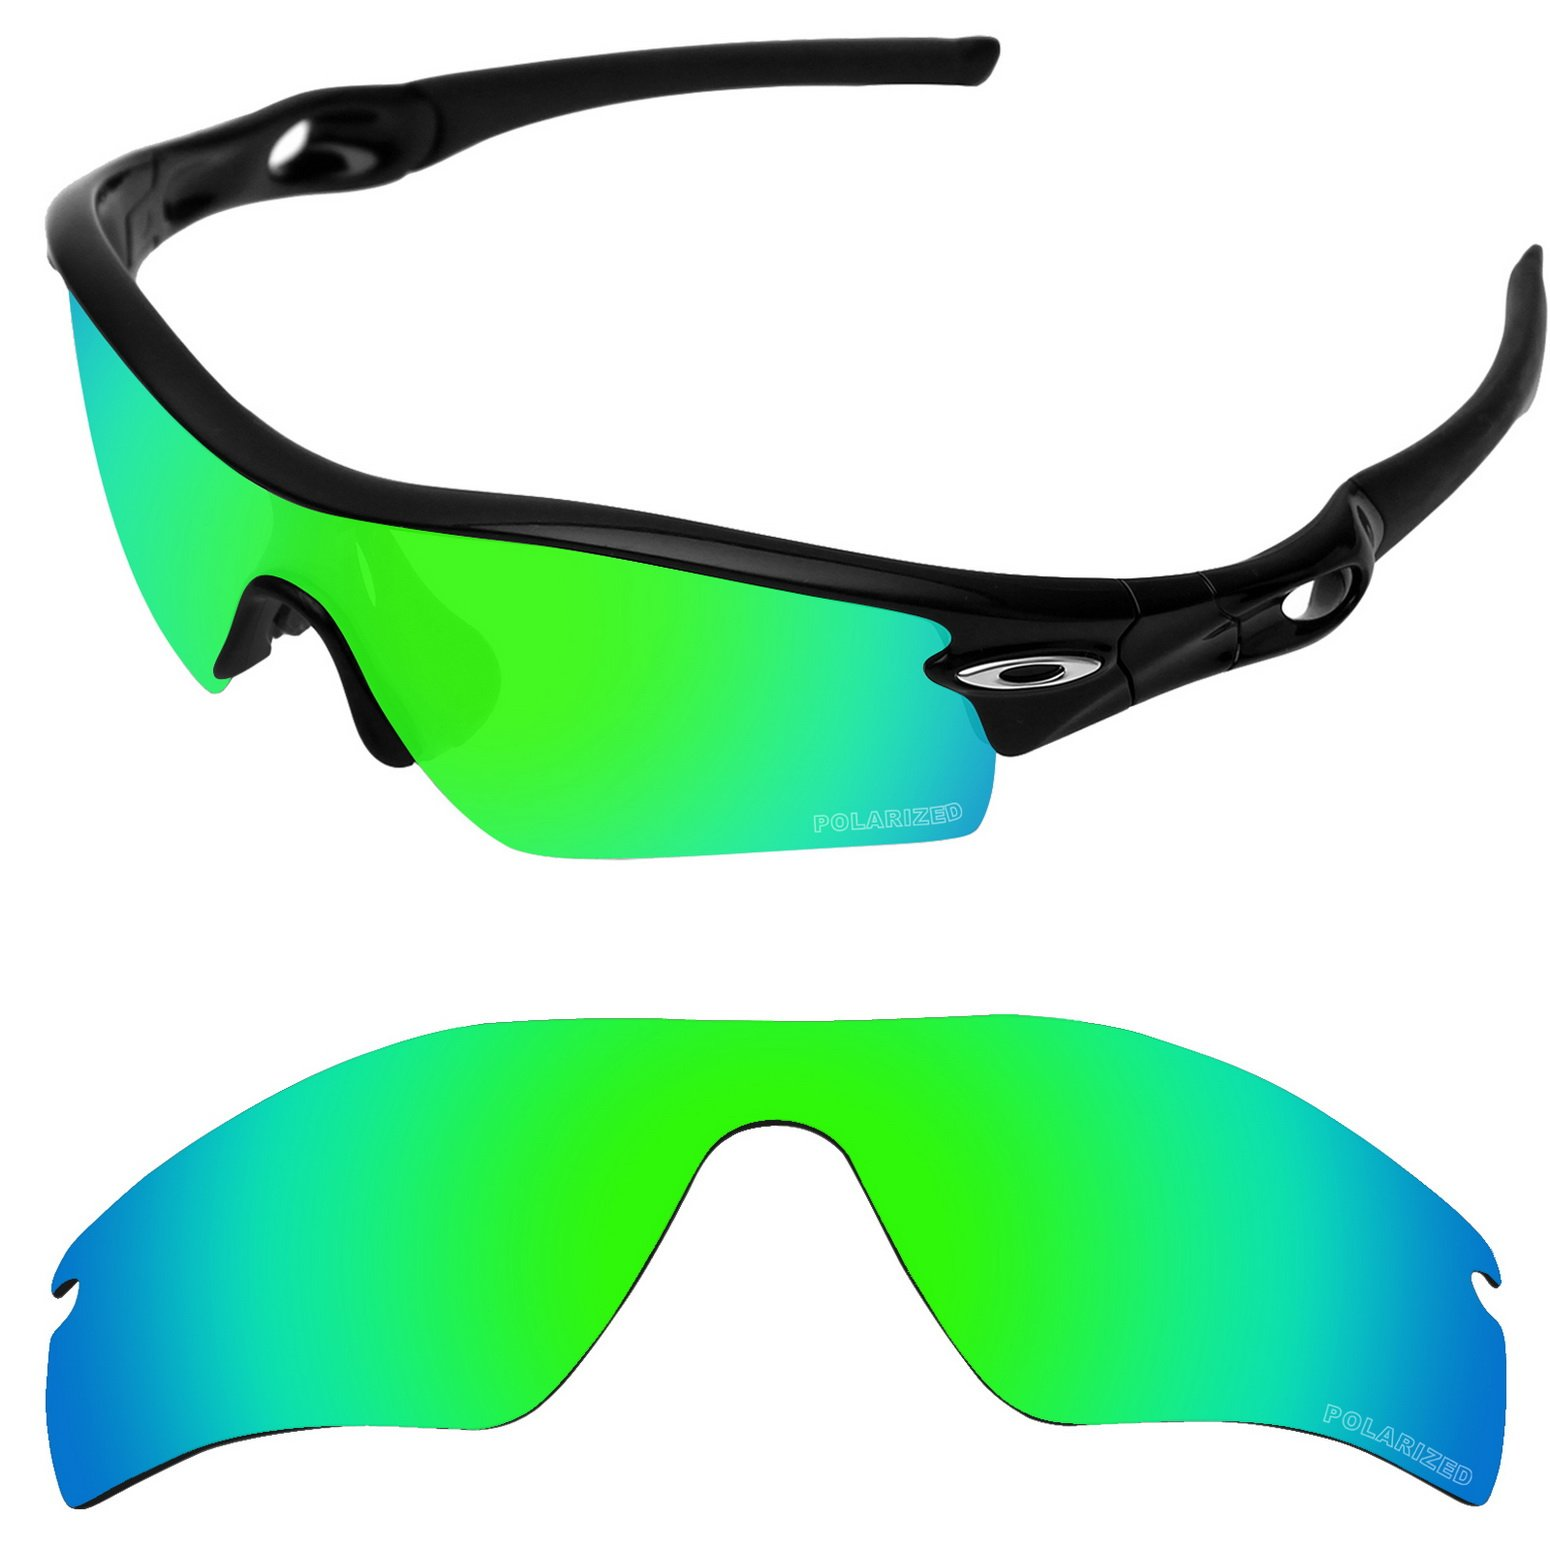 Tintart Performance Replacement Lenses for Oakley Radar Path Sunglass Polarized Etched-Emerald Green